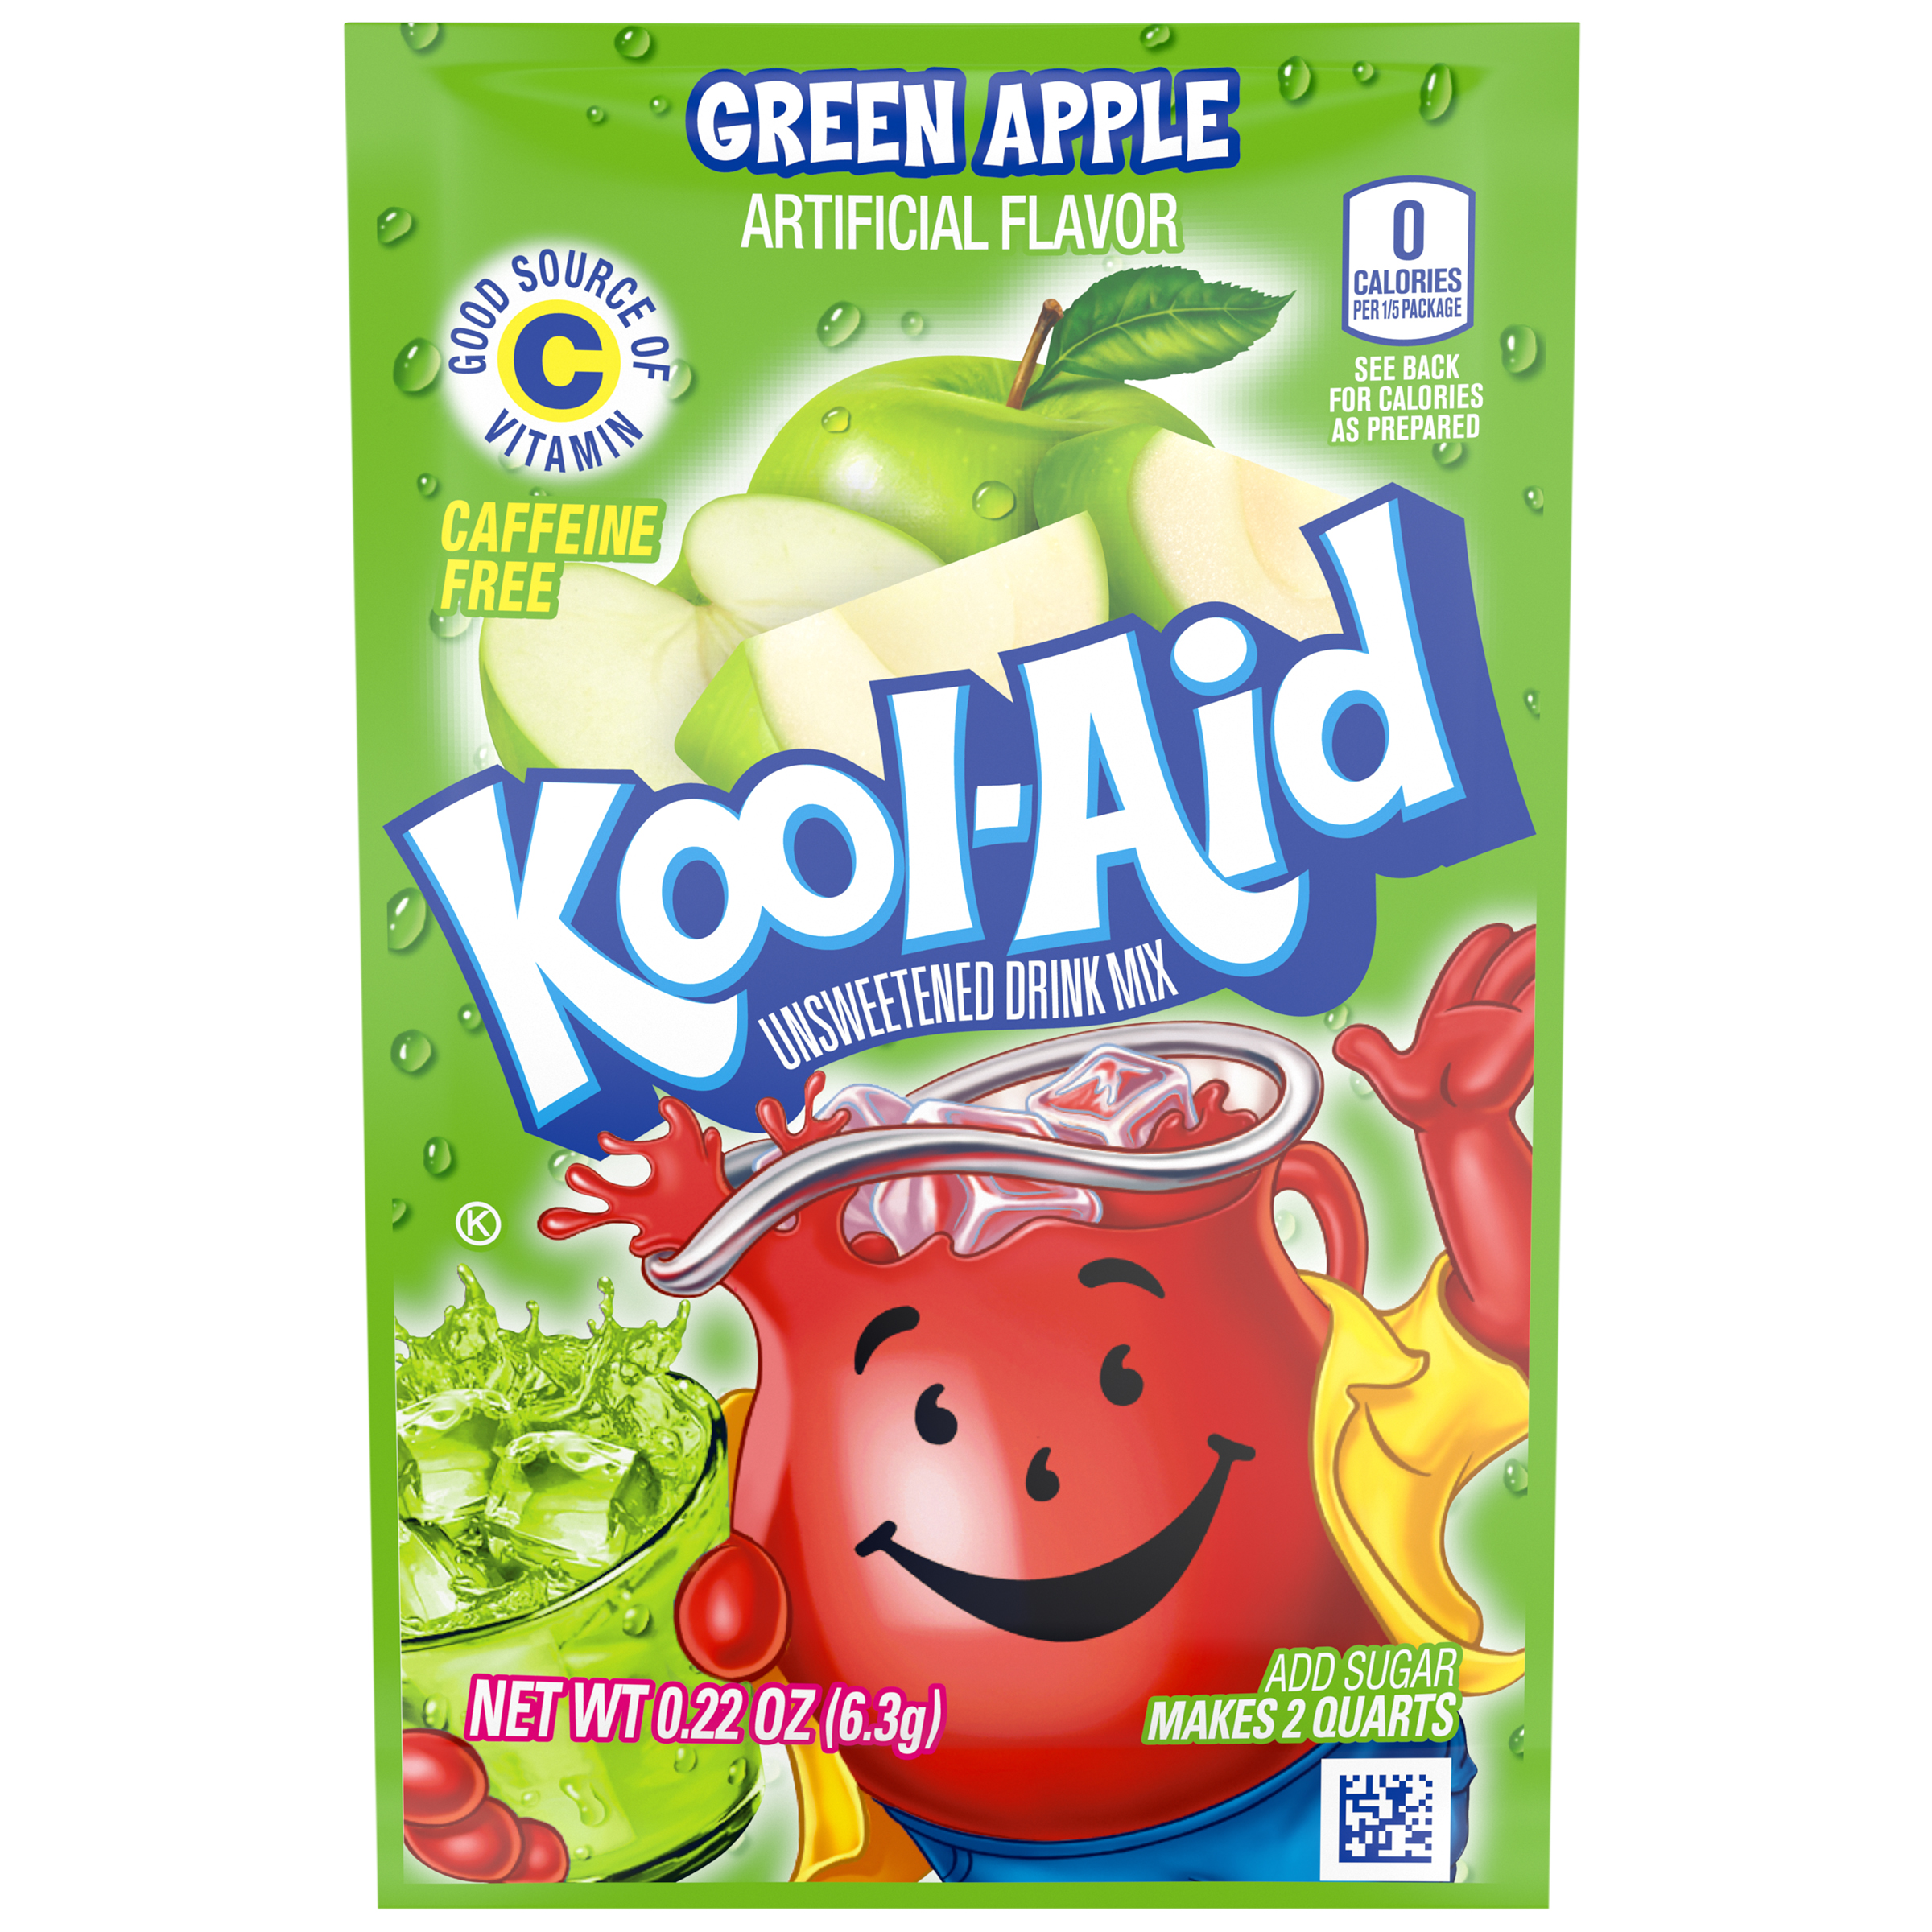 Kool-Aid Green Apple Drink Mix 0.22 oz. Packet image